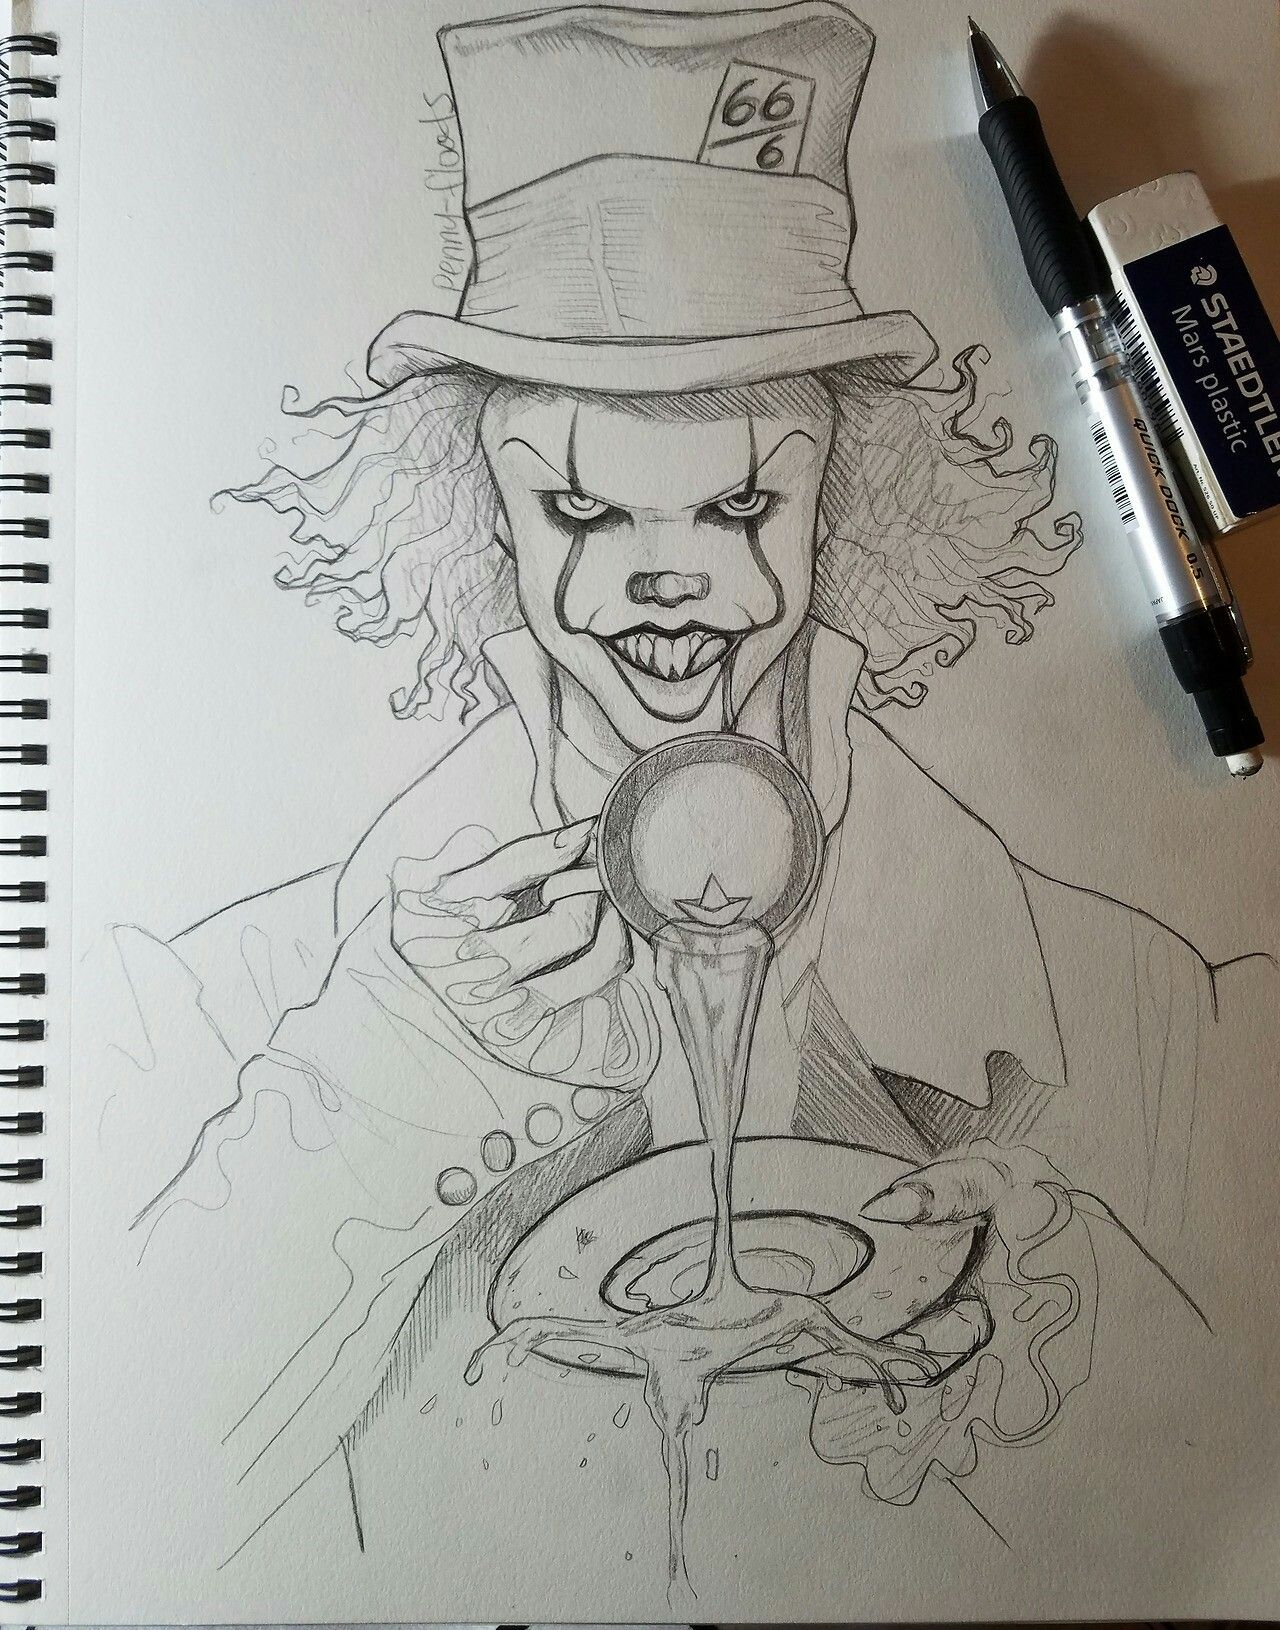 Epingle Par Elaw Yse Sur Ca Dessin Clown Dessins Faciles Croquis Dessin